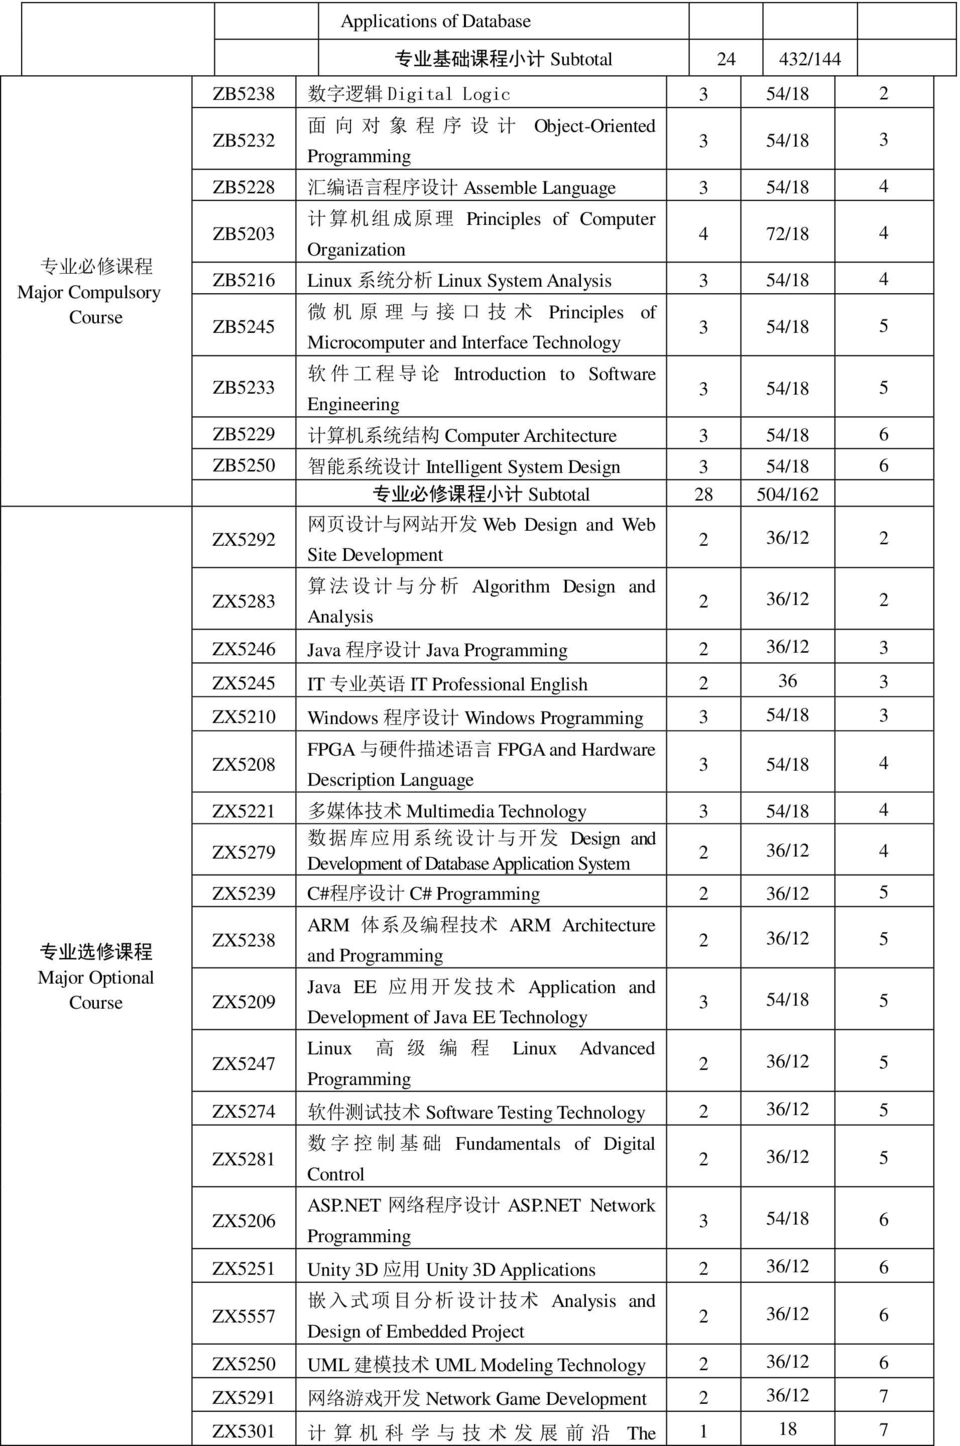 Microcomputer and Interface Technology 3 54/18 5 ZB5233 软 件 工 程 导 论 Introduction to Software Engineering 3 54/18 5 ZB5229 计 算 机 系 统 结 构 Computer Architecture 3 54/18 6 ZB5250 智 能 系 统 设 计 Intelligent